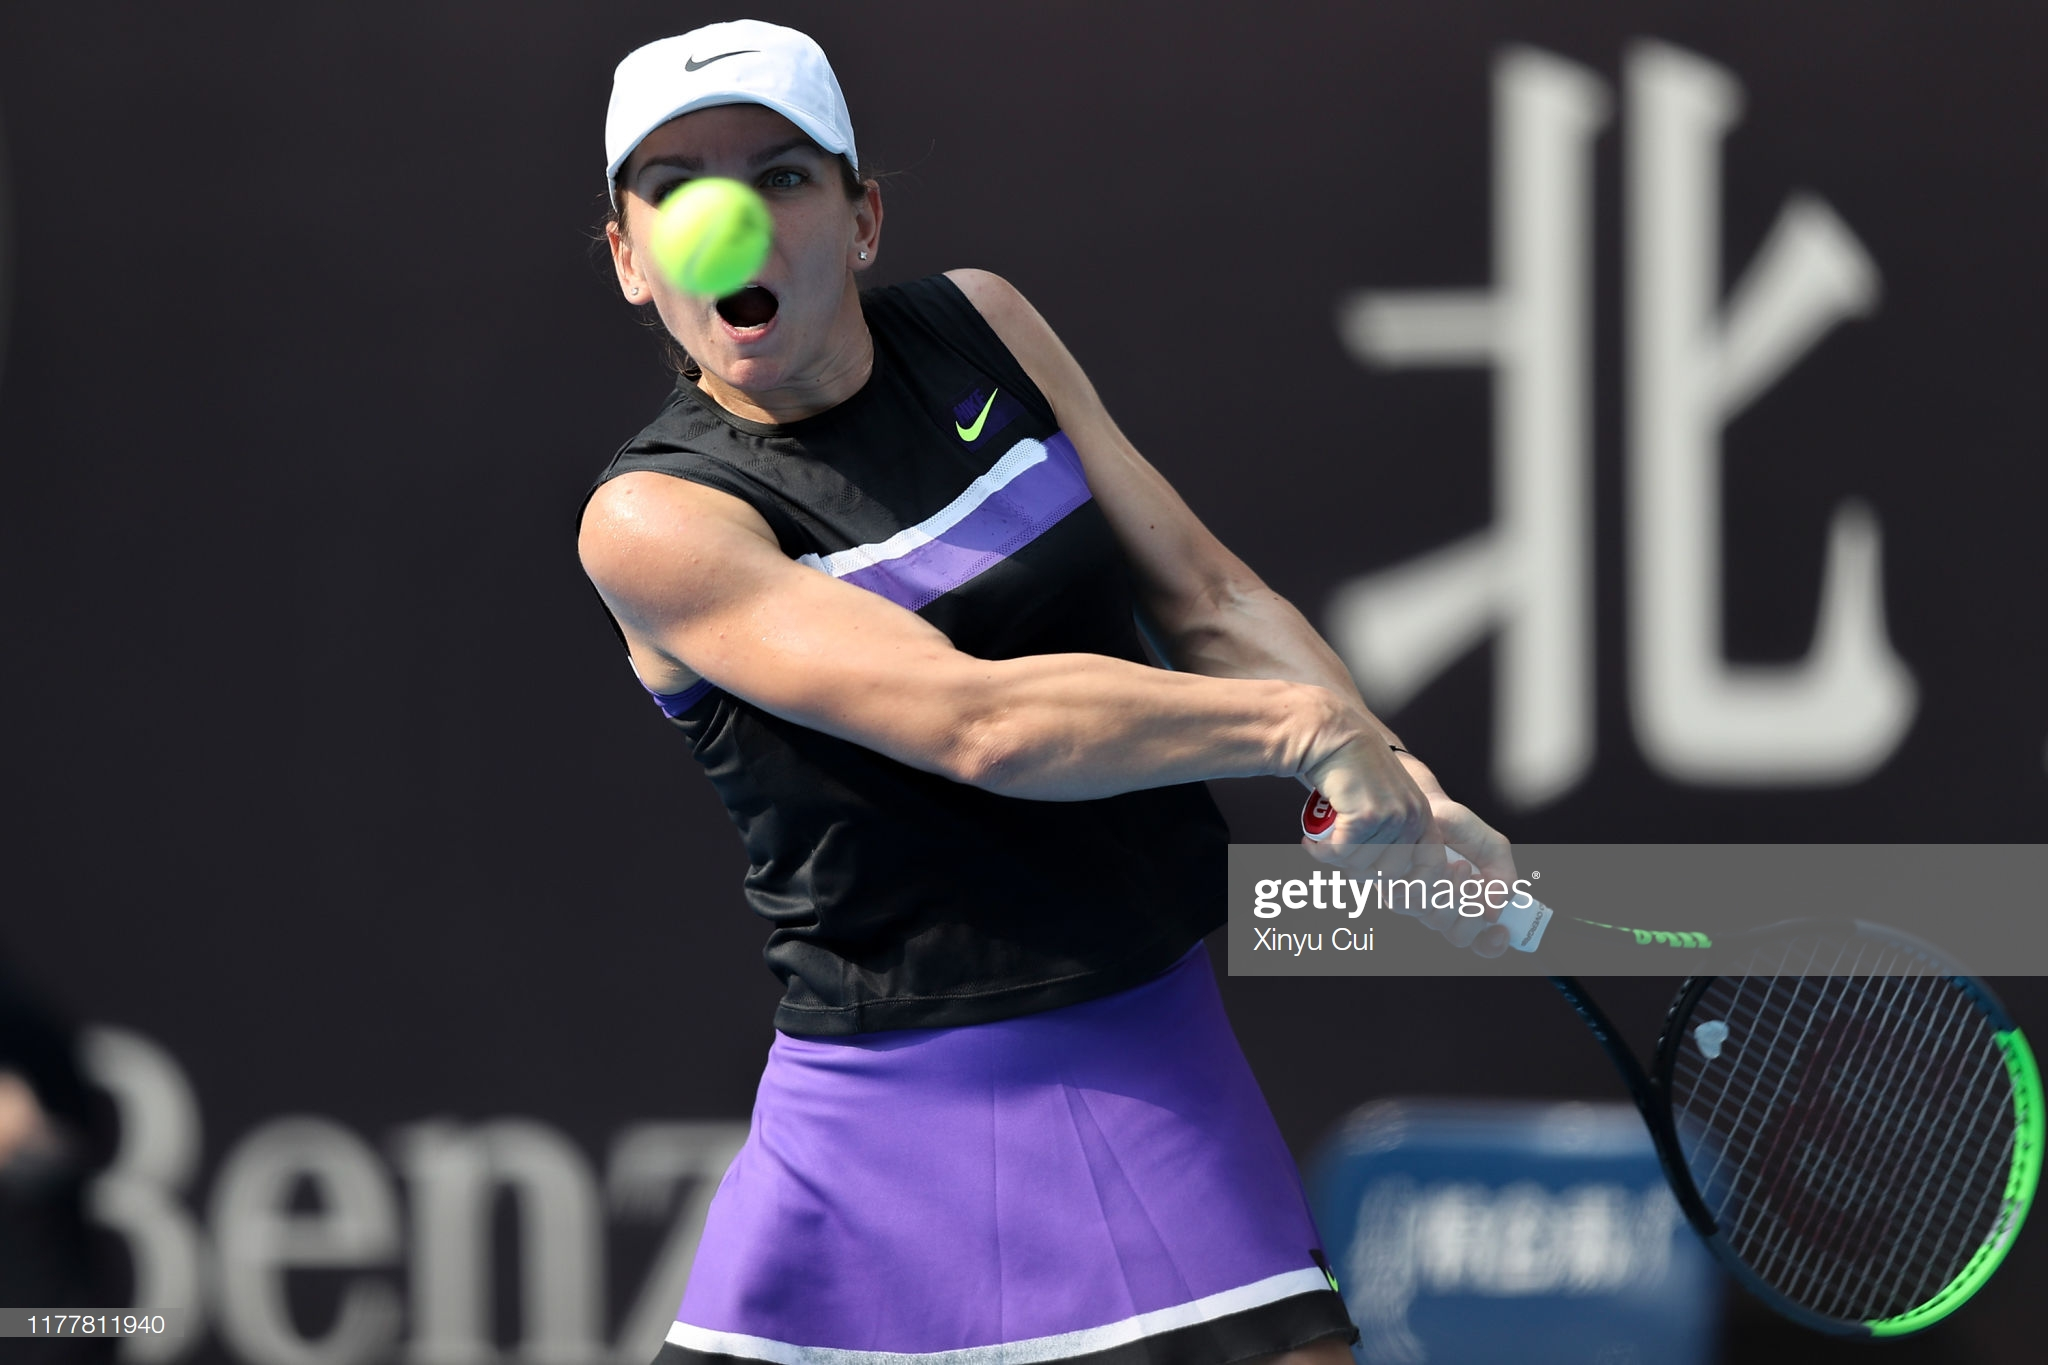 BEIJING, CHINA - SEPTEMBER 29: Simona Halep of Romania returns a shot against Rebecca Peterson of Sweden during women's singles first round match of 2019 China Open at the China National Tennis Center on September 29, 2019 in Beijing, China.  (Photo by Xinyu Cui/Getty Images)